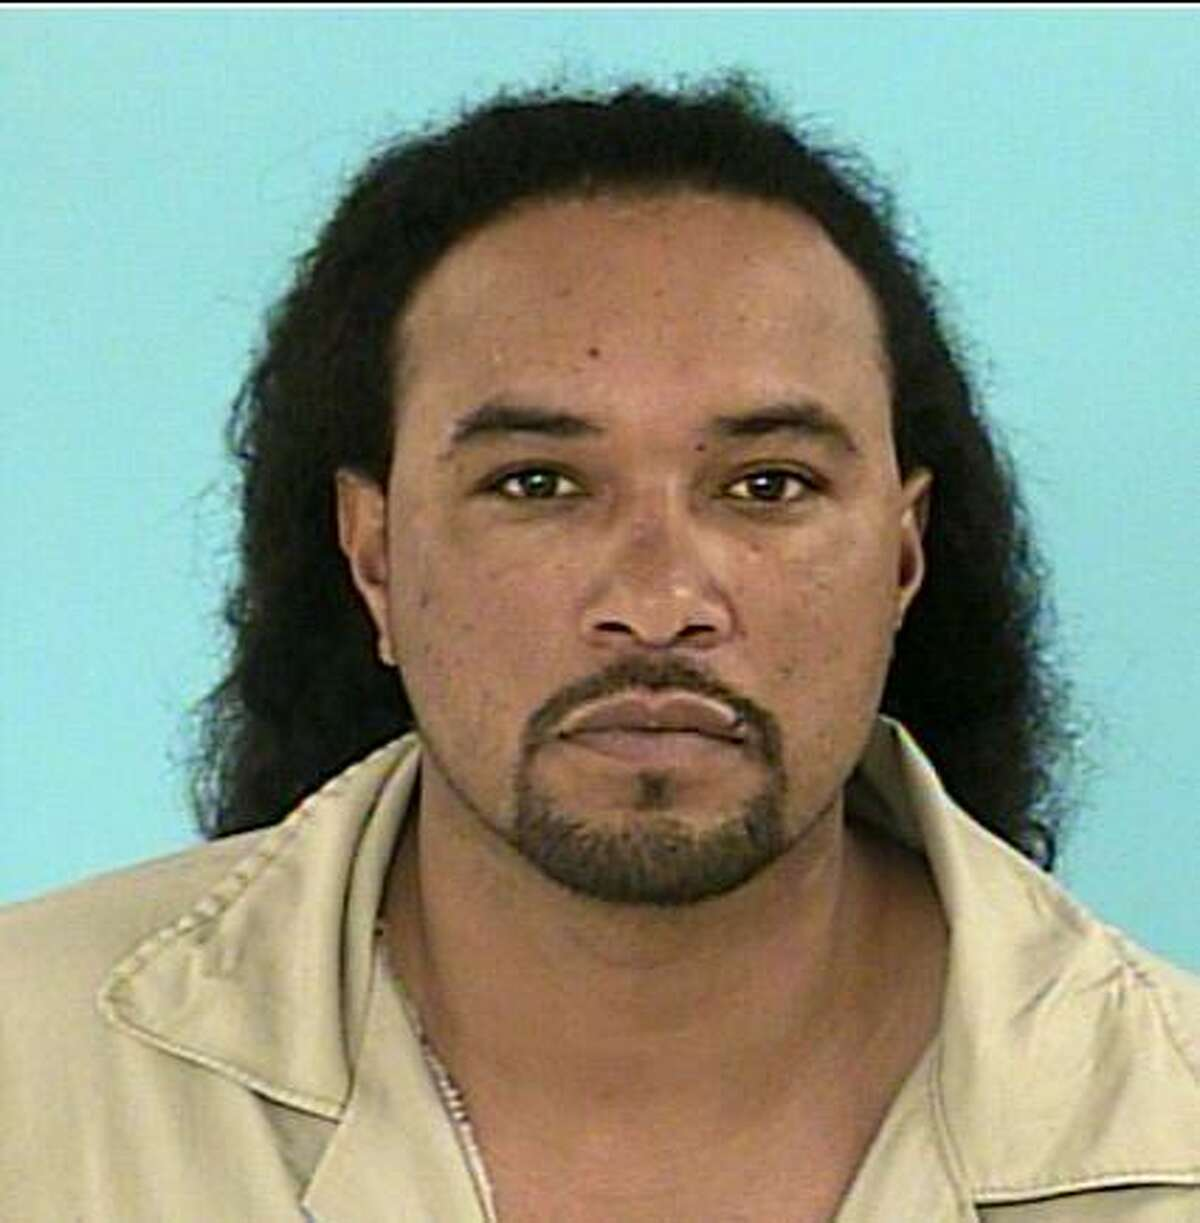 Denis Daniel Ordenana is charged with Capital Murder in the 2007 death of Amado Navarro Trejo. Ordenana is not in custody and investigators need the public's help in locating him. Harris County Sheriff Department